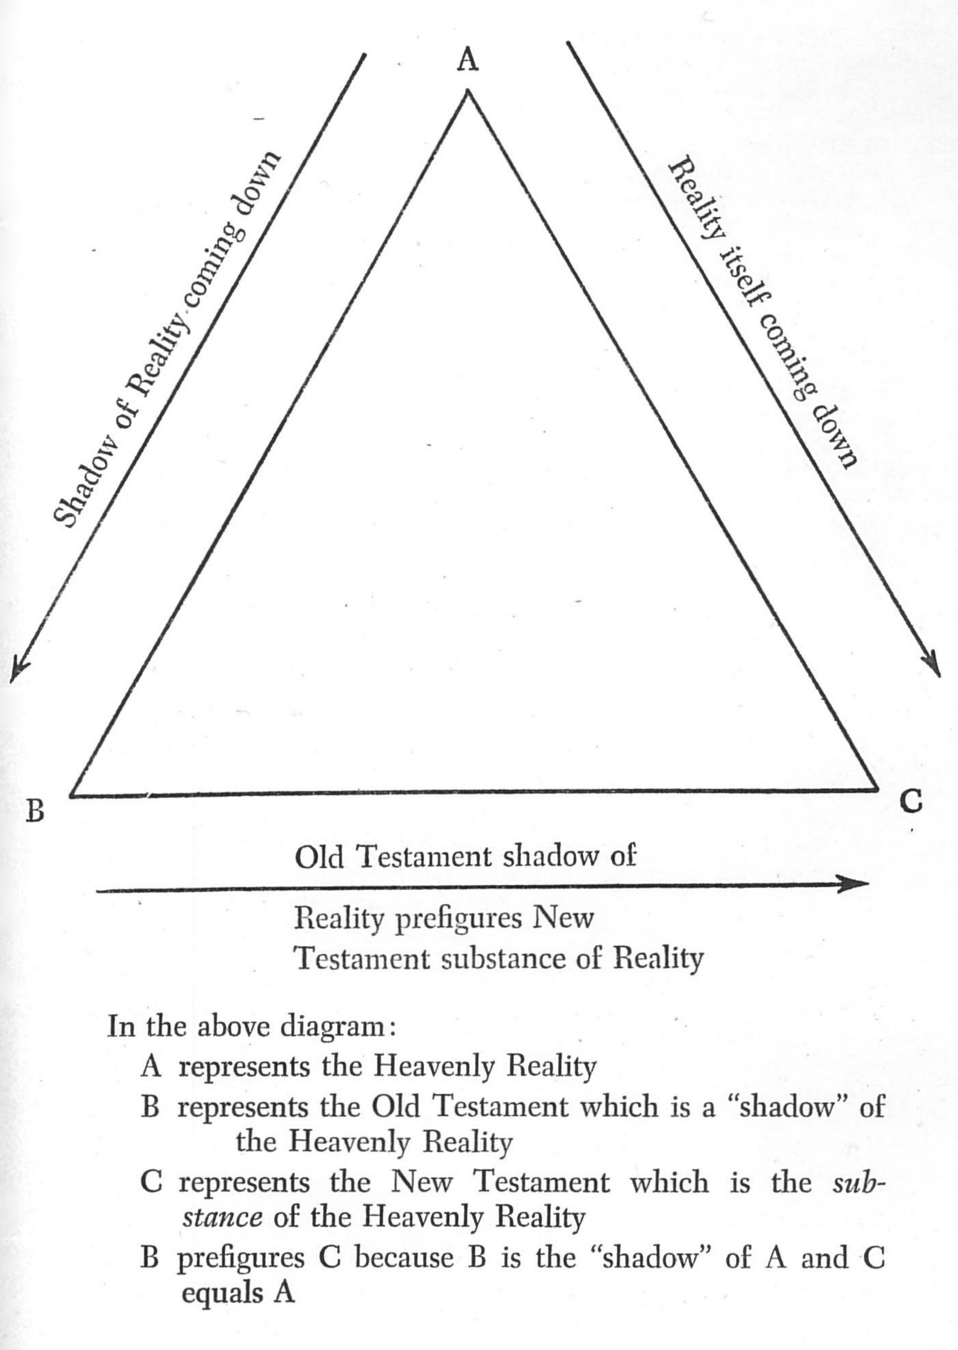 Orthodox presbyterian church 82 the new testament is not merely a reproduction of the heavenly reality it is the reality itself come down from heaven83 vos diagrammed the fandeluxe Images